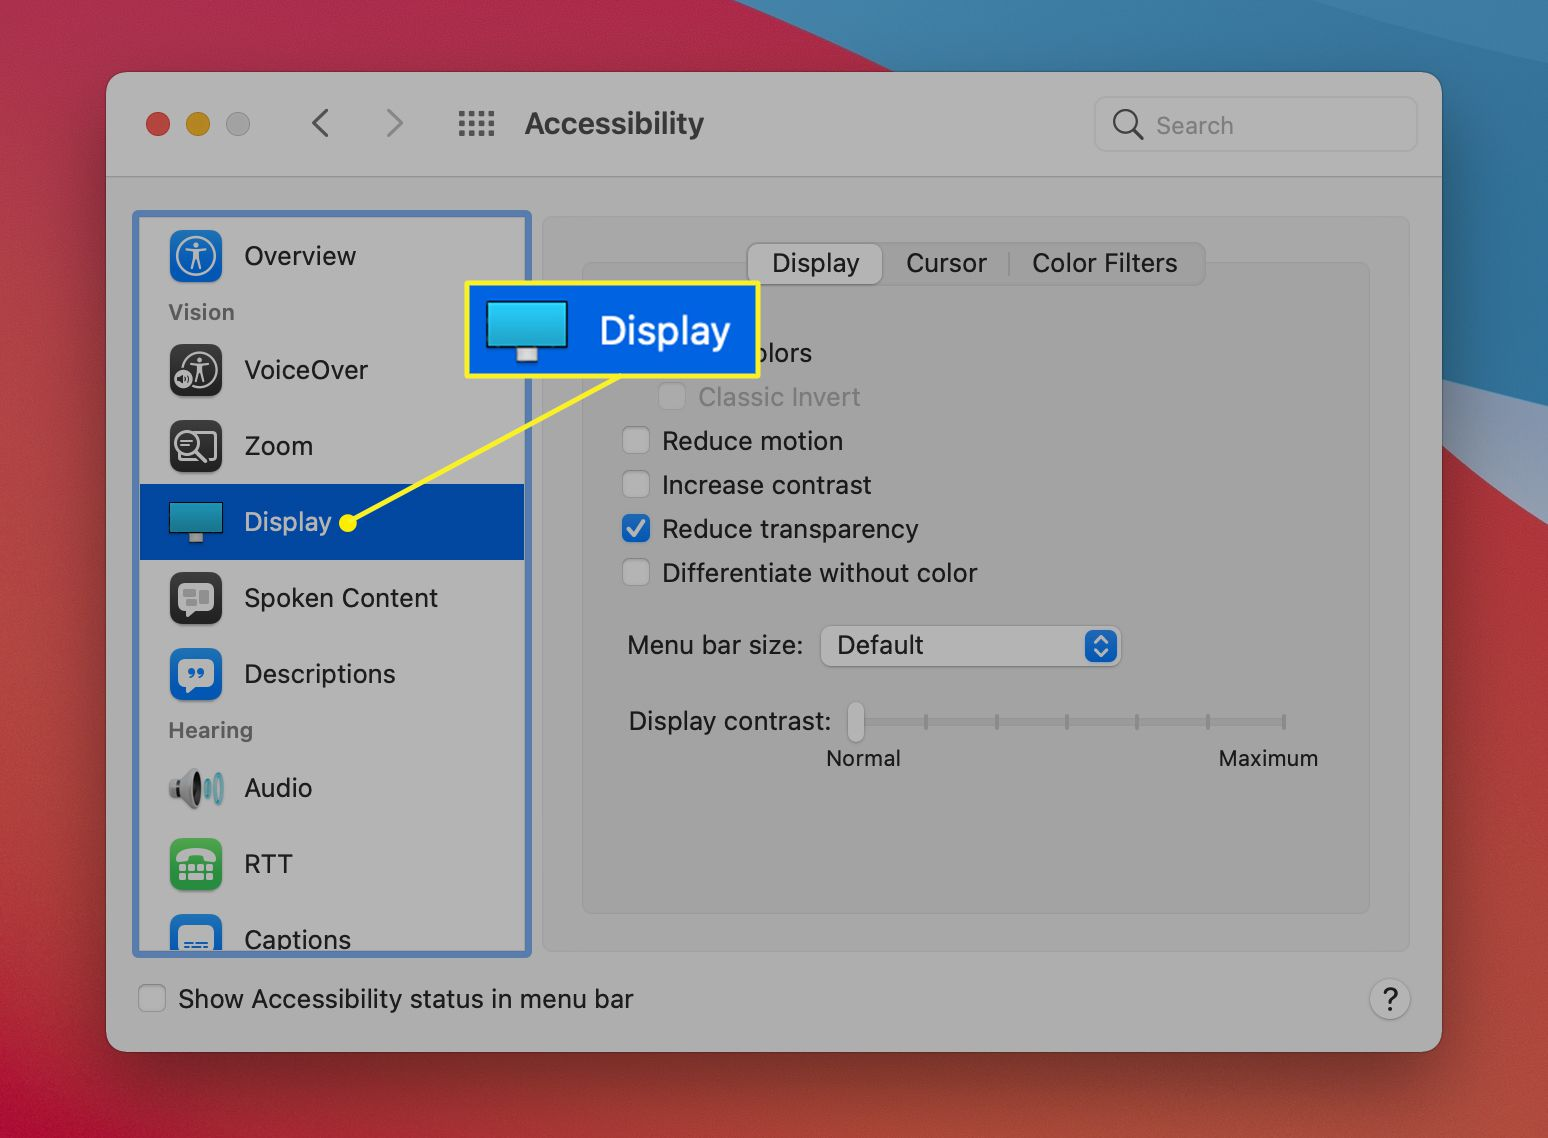 Accessibility Preferences with Display highlighted